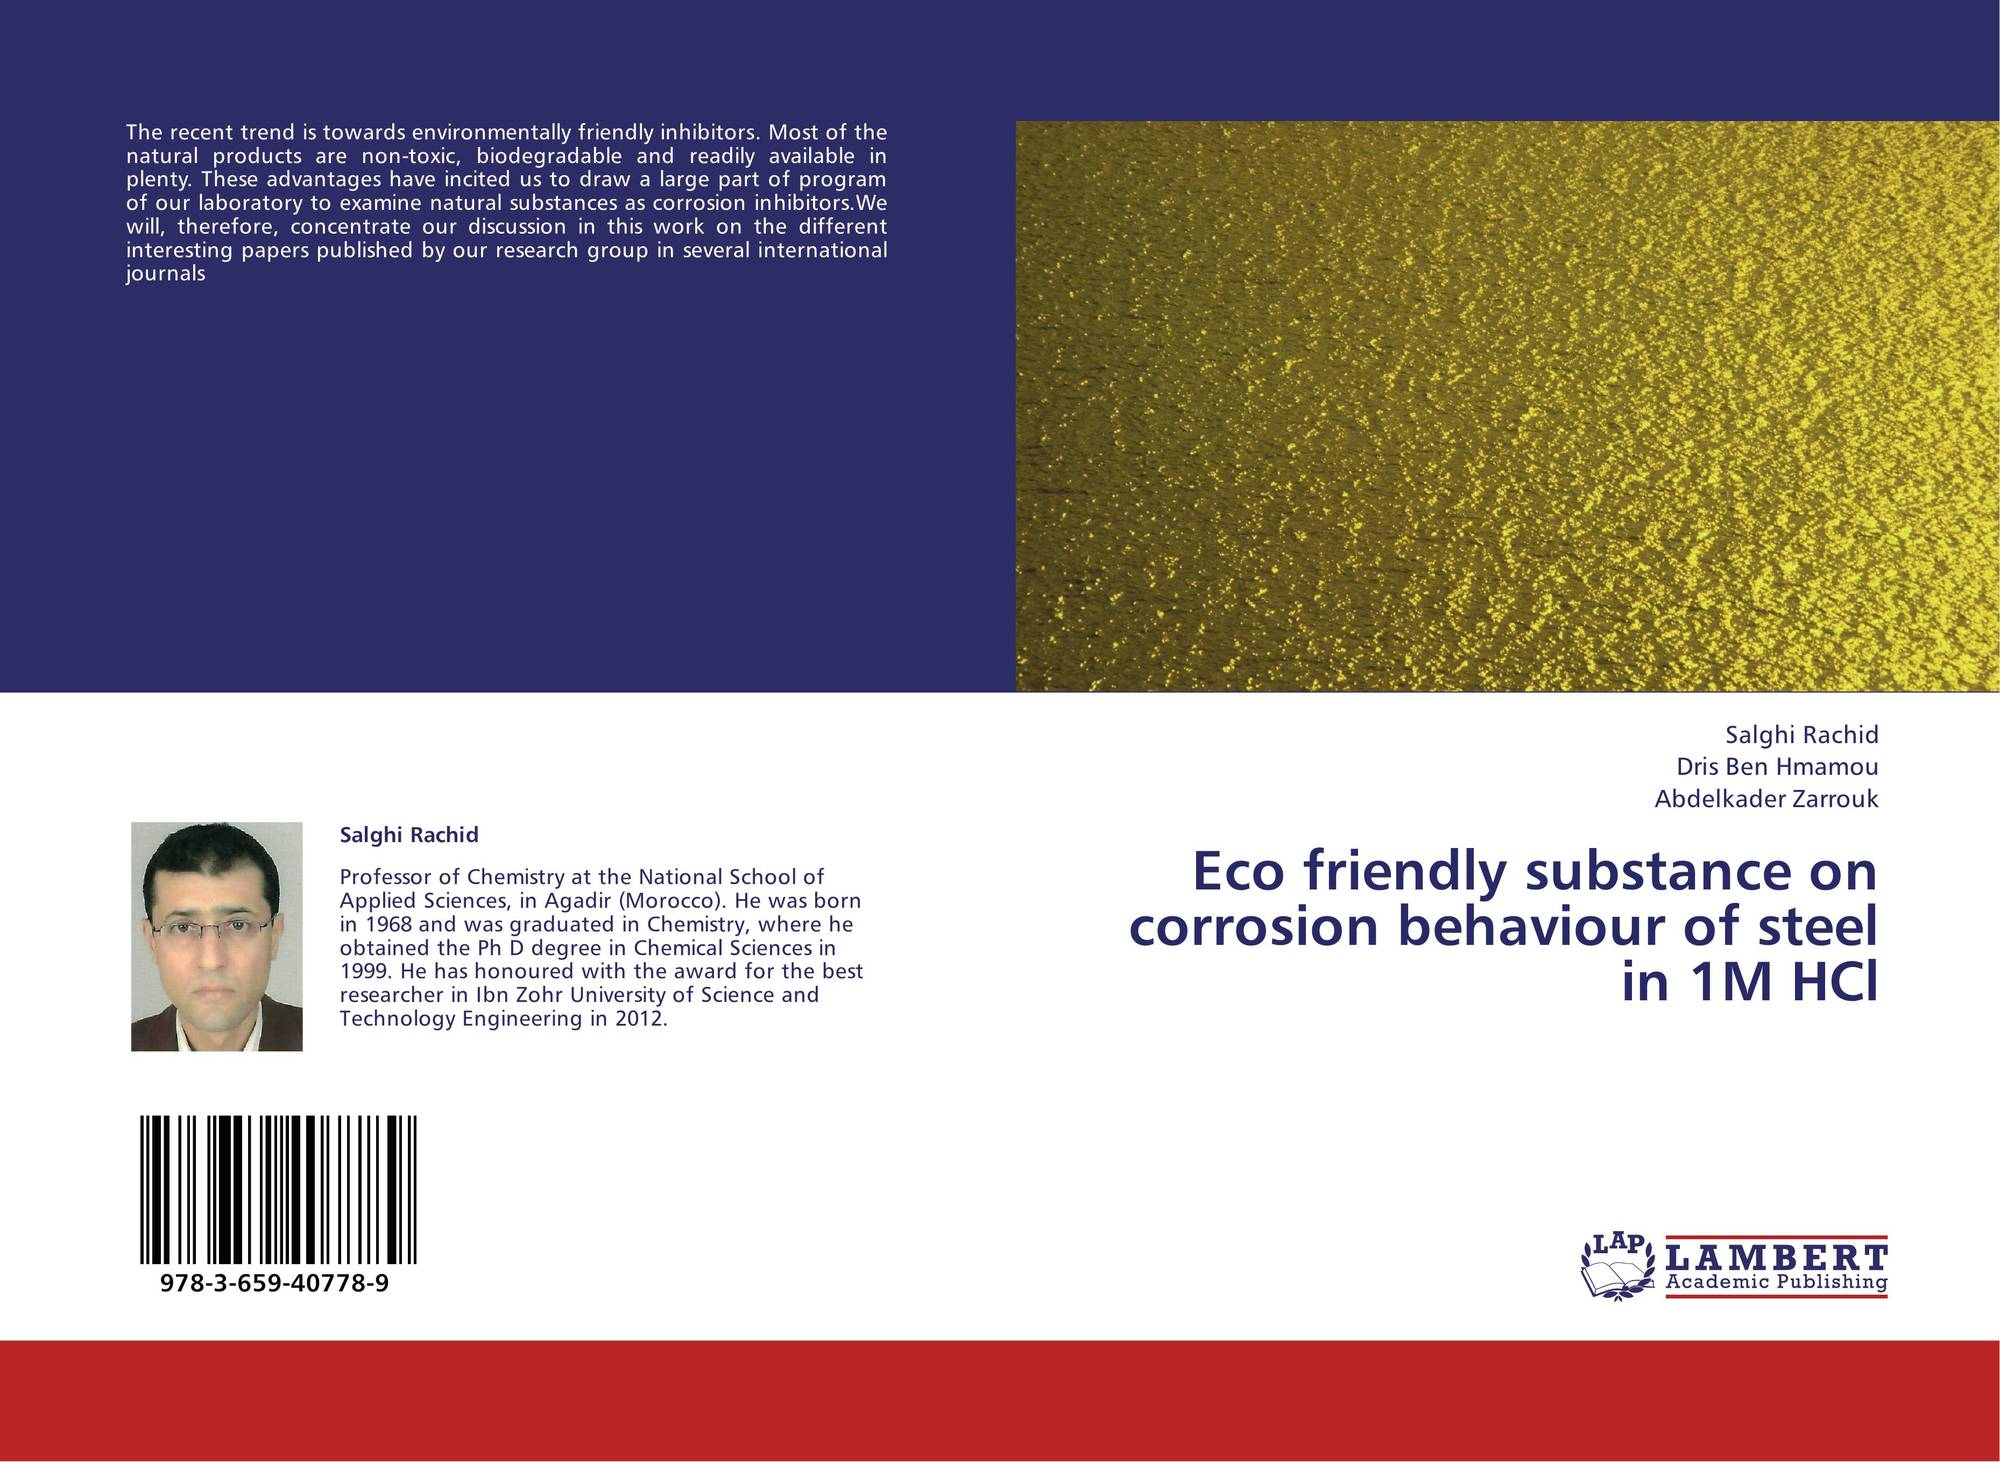 research papers green corrosion inhibitors